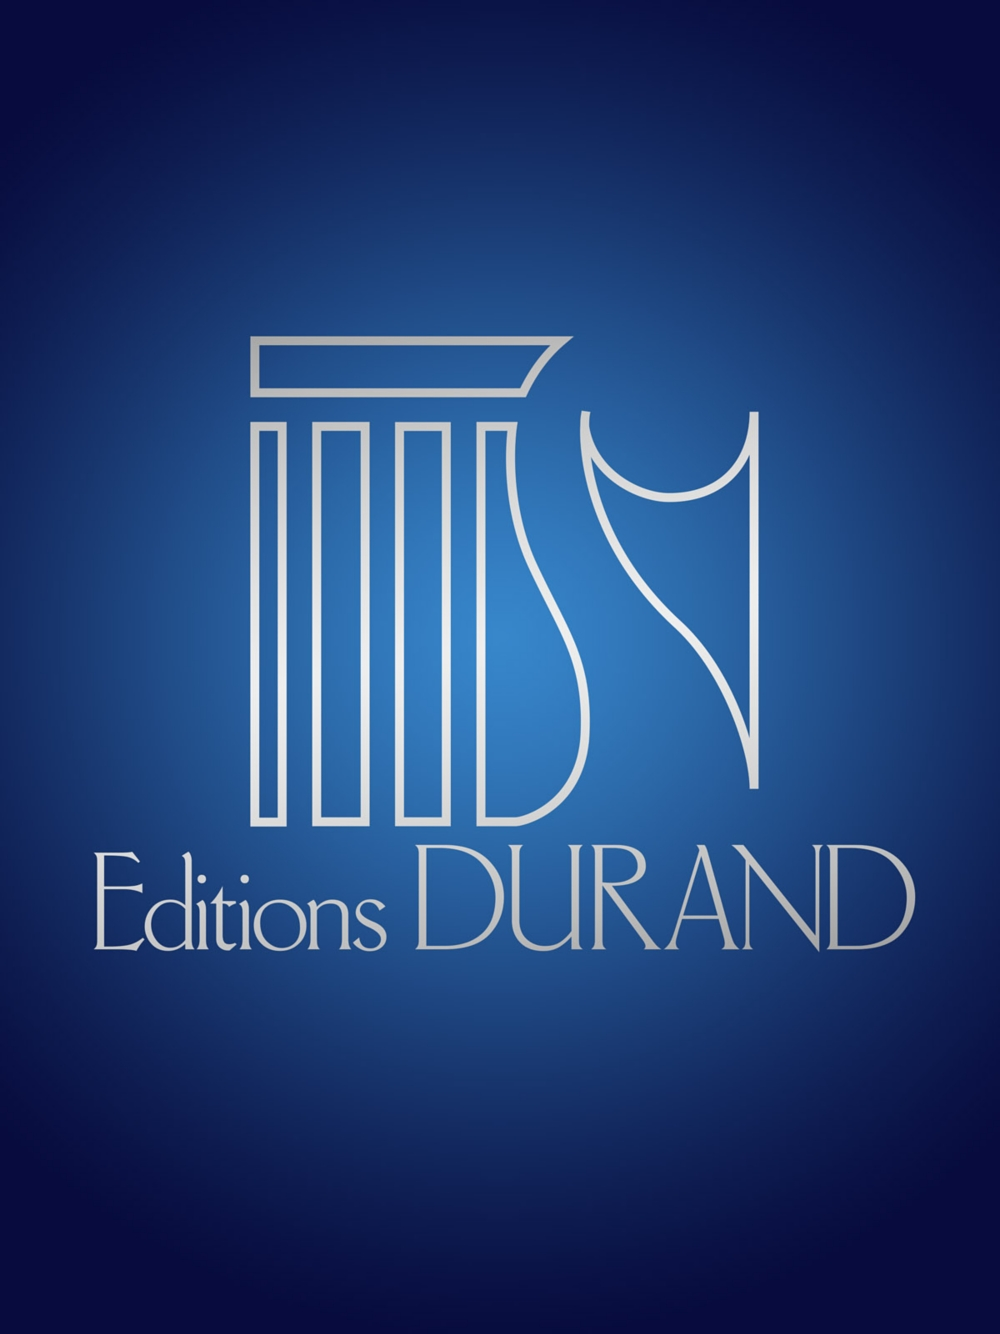 Editions Durand 4 Madrigaux (Oboe, Clarinet, Bassoon) Editions Durand Series Book by... by Editions Durand